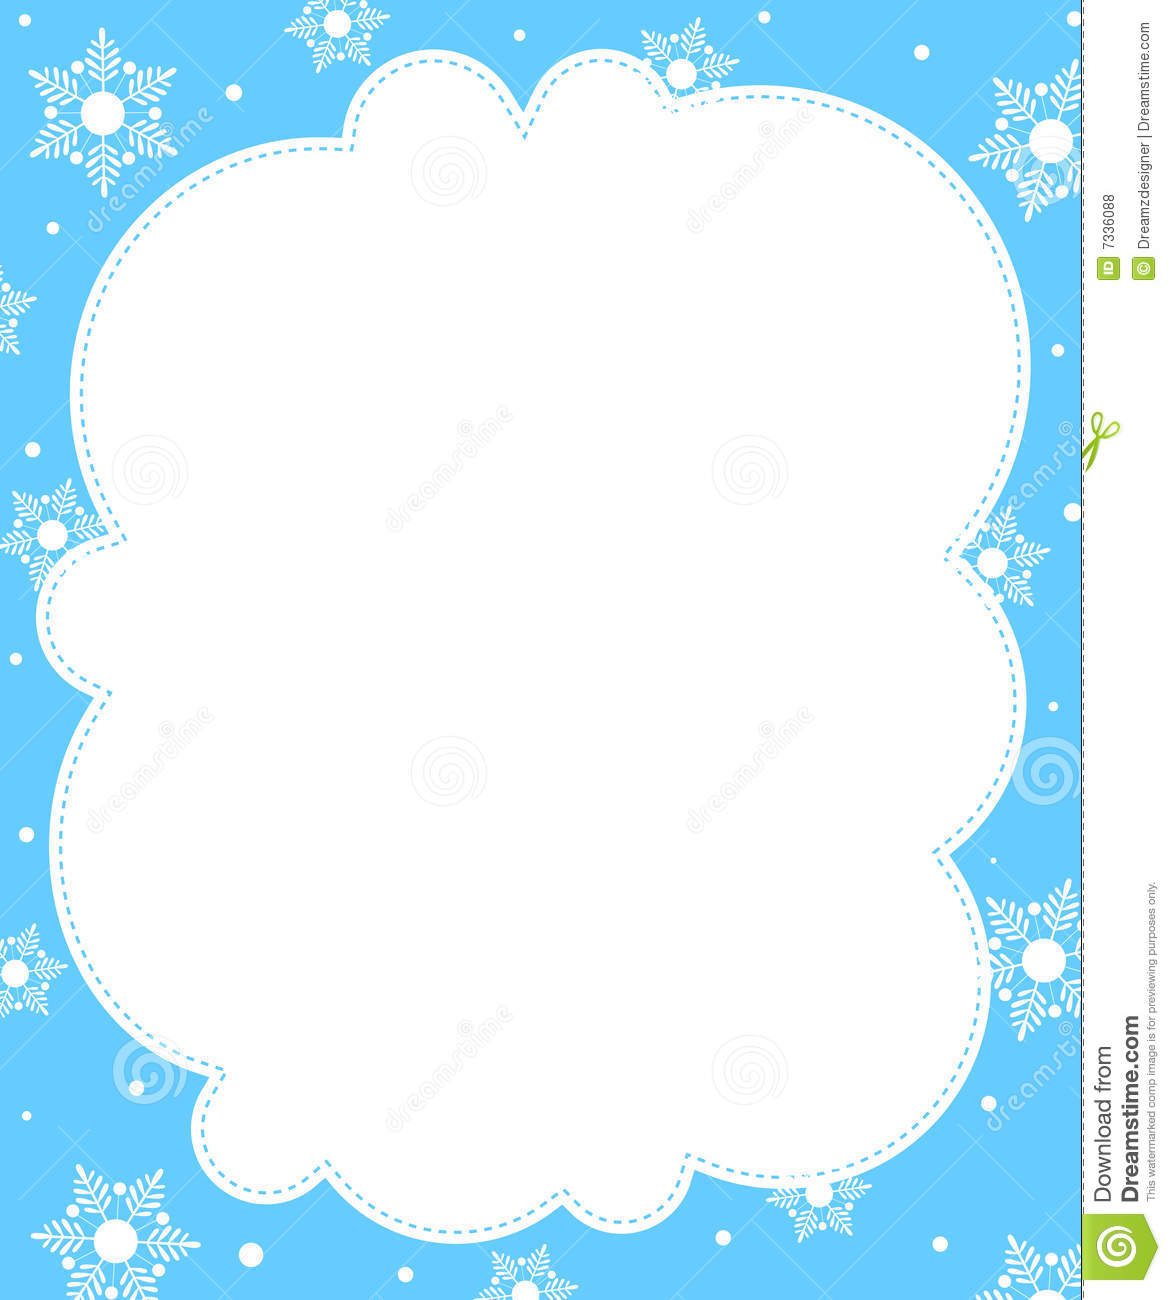 ... / winter border / frame. falling snow on beautiful blue background Falling Snowflake Vector